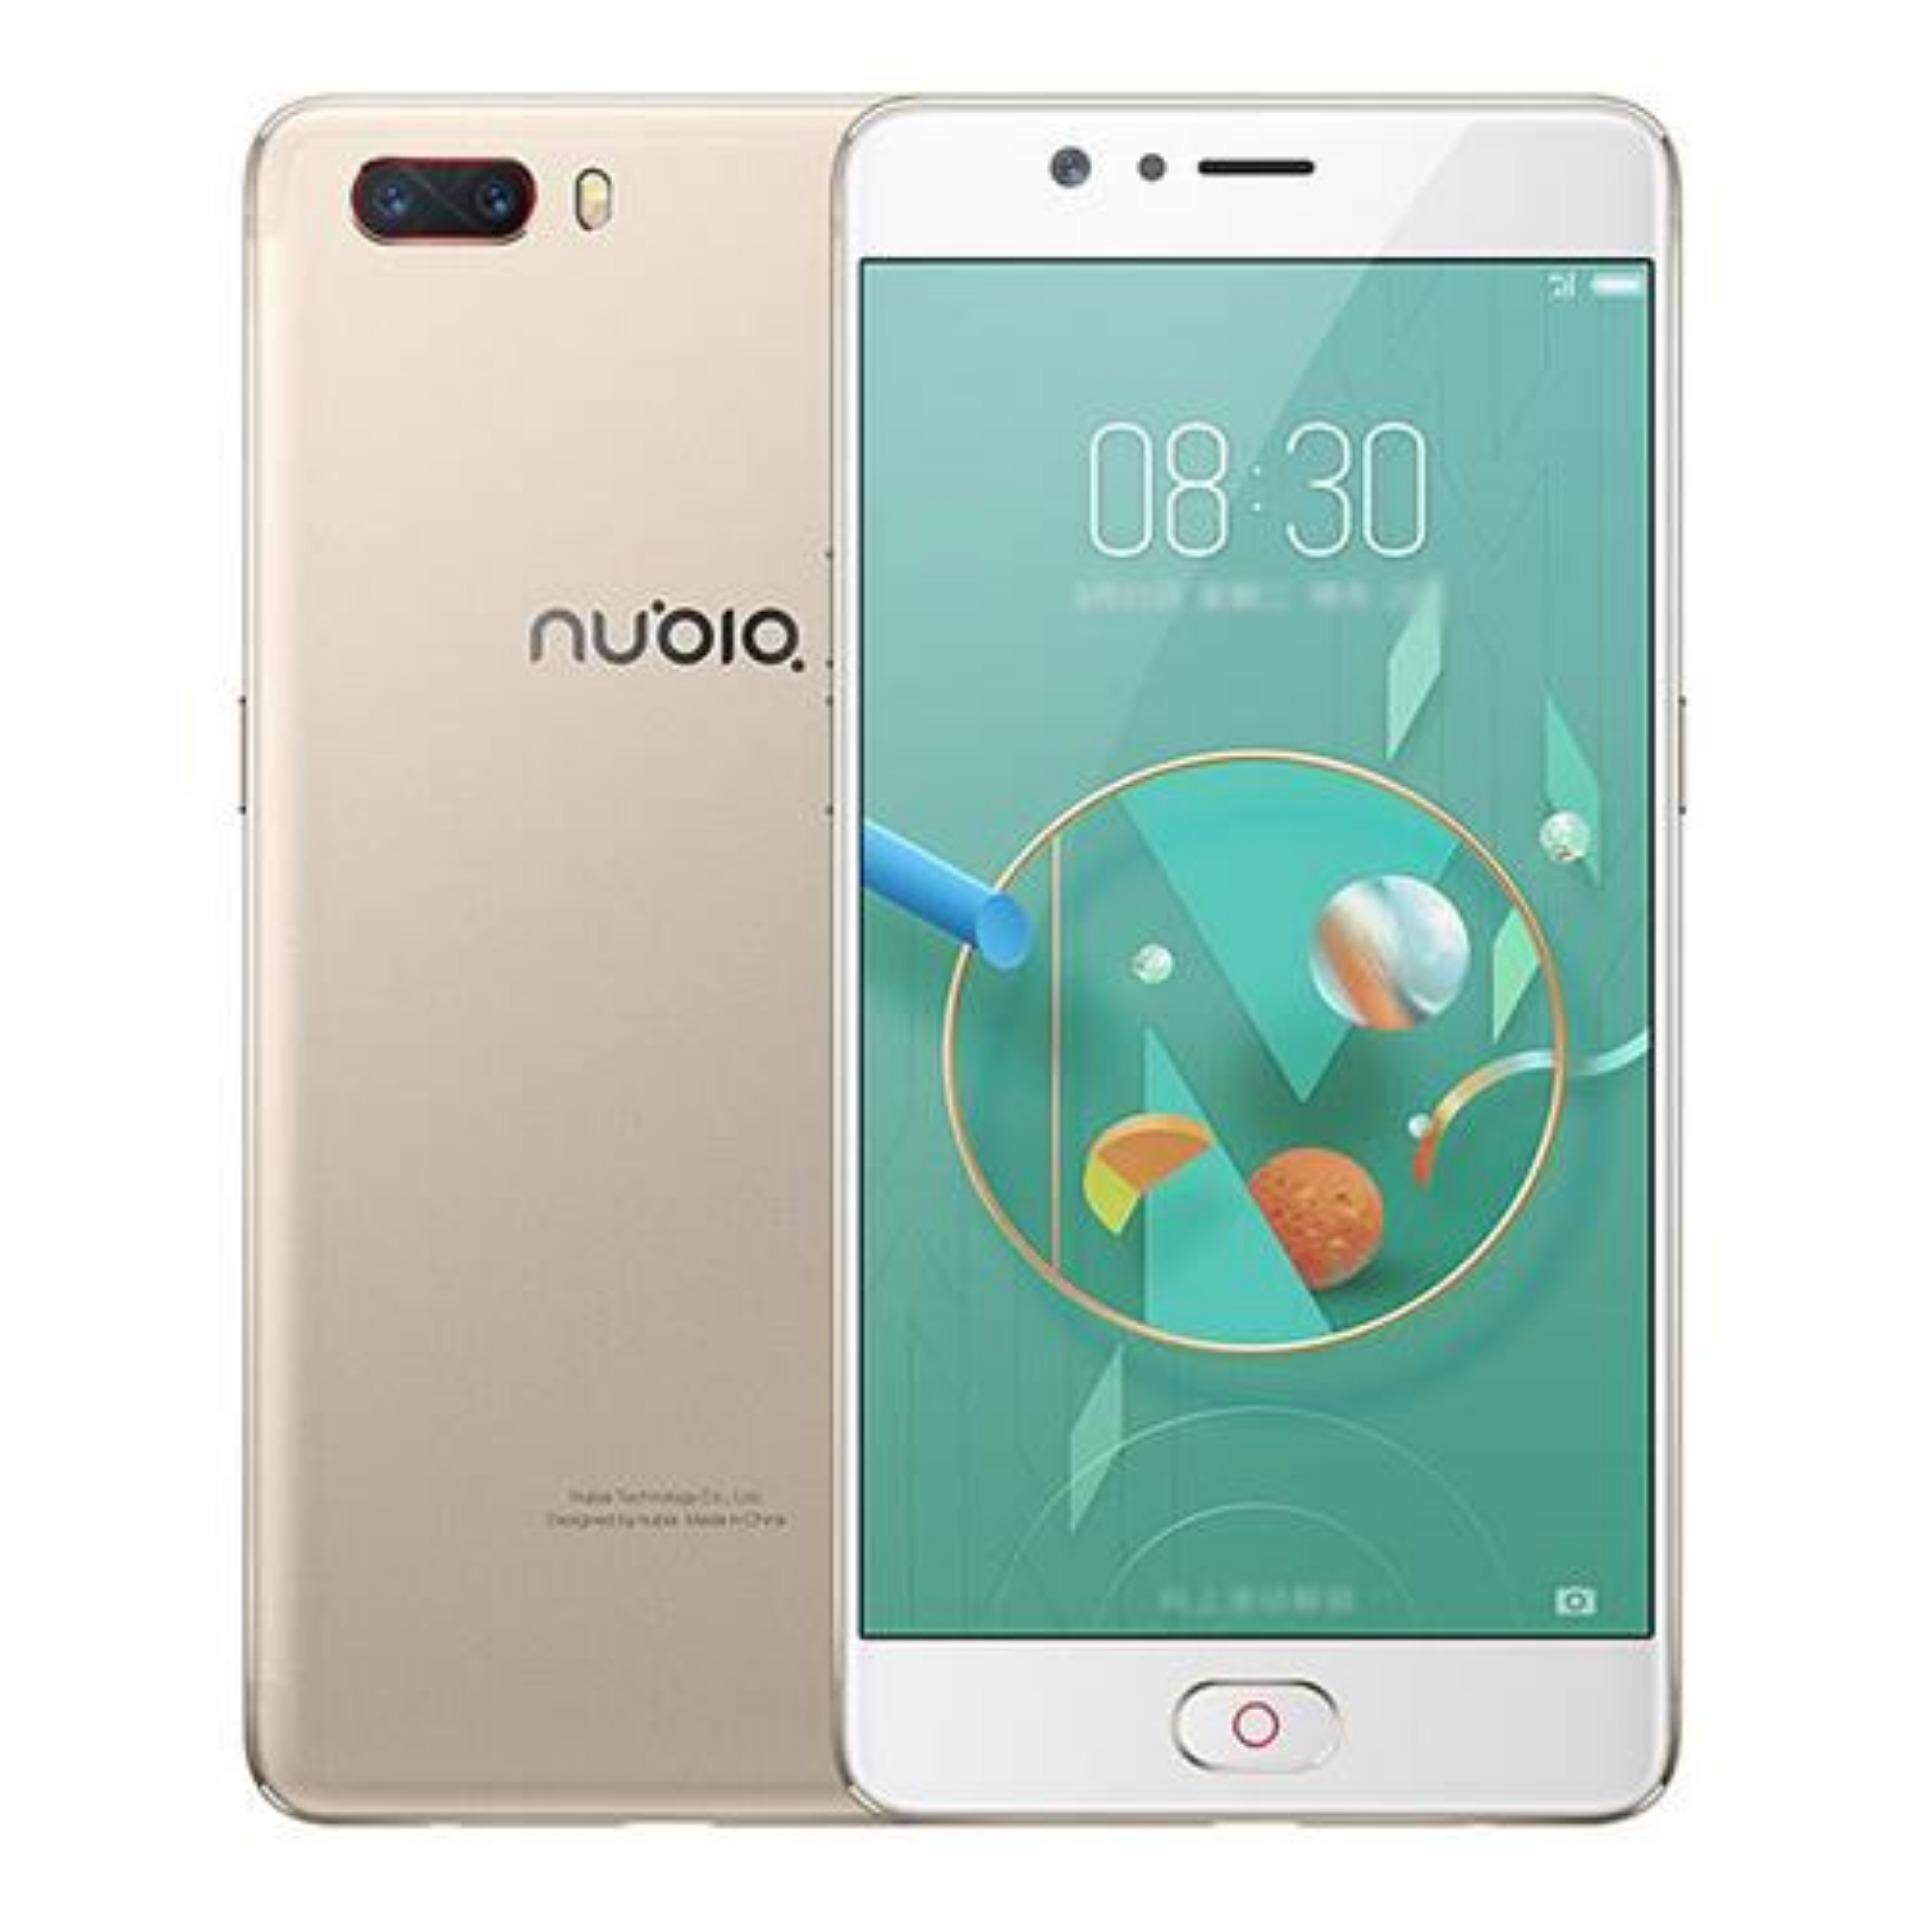 NUBIA M2 4GB RAM + 64 GB ROM 100% ORIGINAL SET 1 YEAR WARRANTY